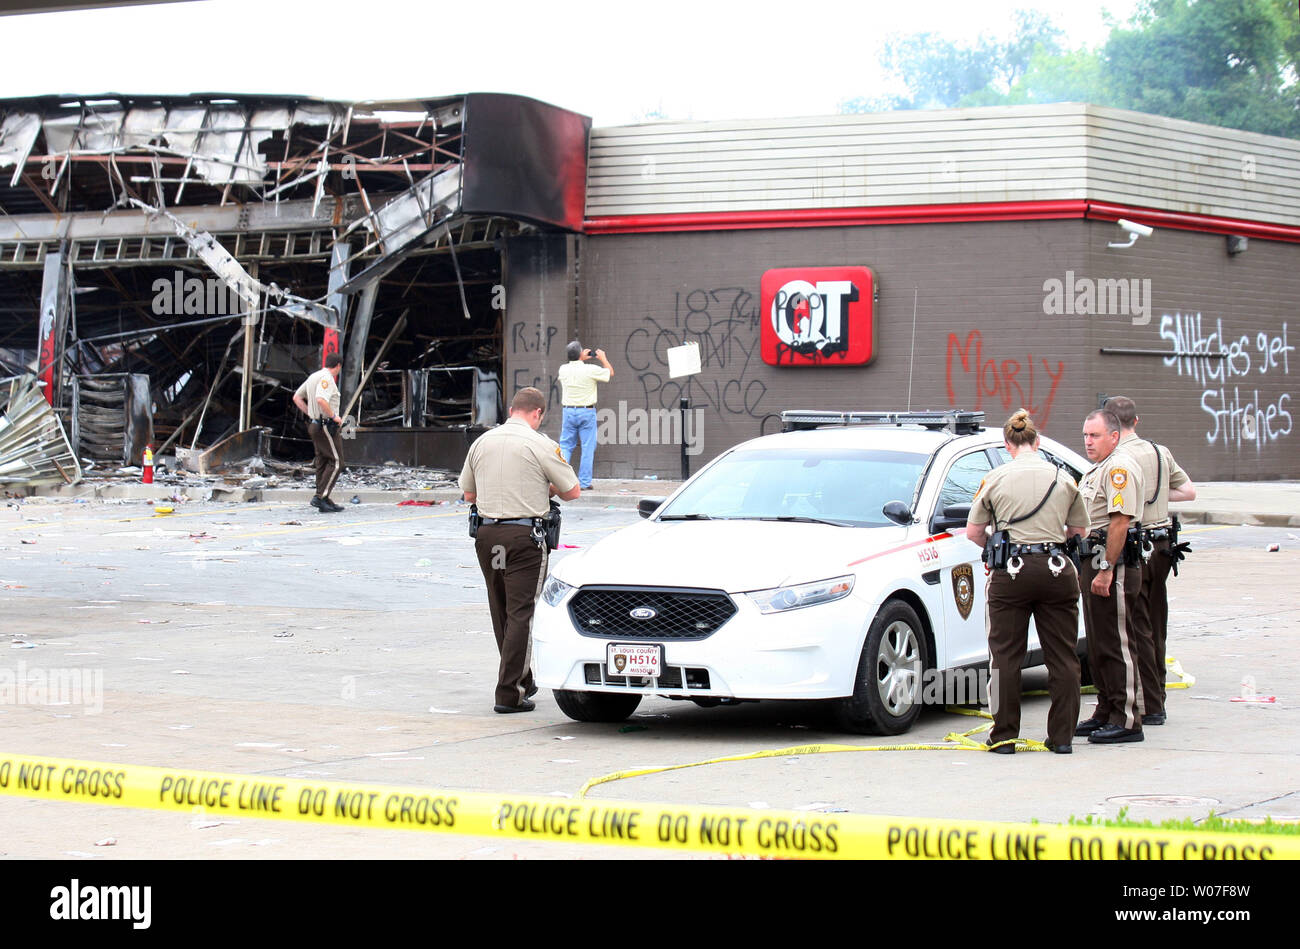 Members of the St. Louis County Police Department remain on the lot of the QuikTrip Gas station in Ferguson, Missouri on August 11, 2014. People are upset because of the Ferguson Police shooting and death of an unarmed black teenager Michael Brown on August 9, 2014. In all about 20 businesses sustained damage after a candlelight vigil turned violent.   UPI/Bill Greenblatt Stock Photo